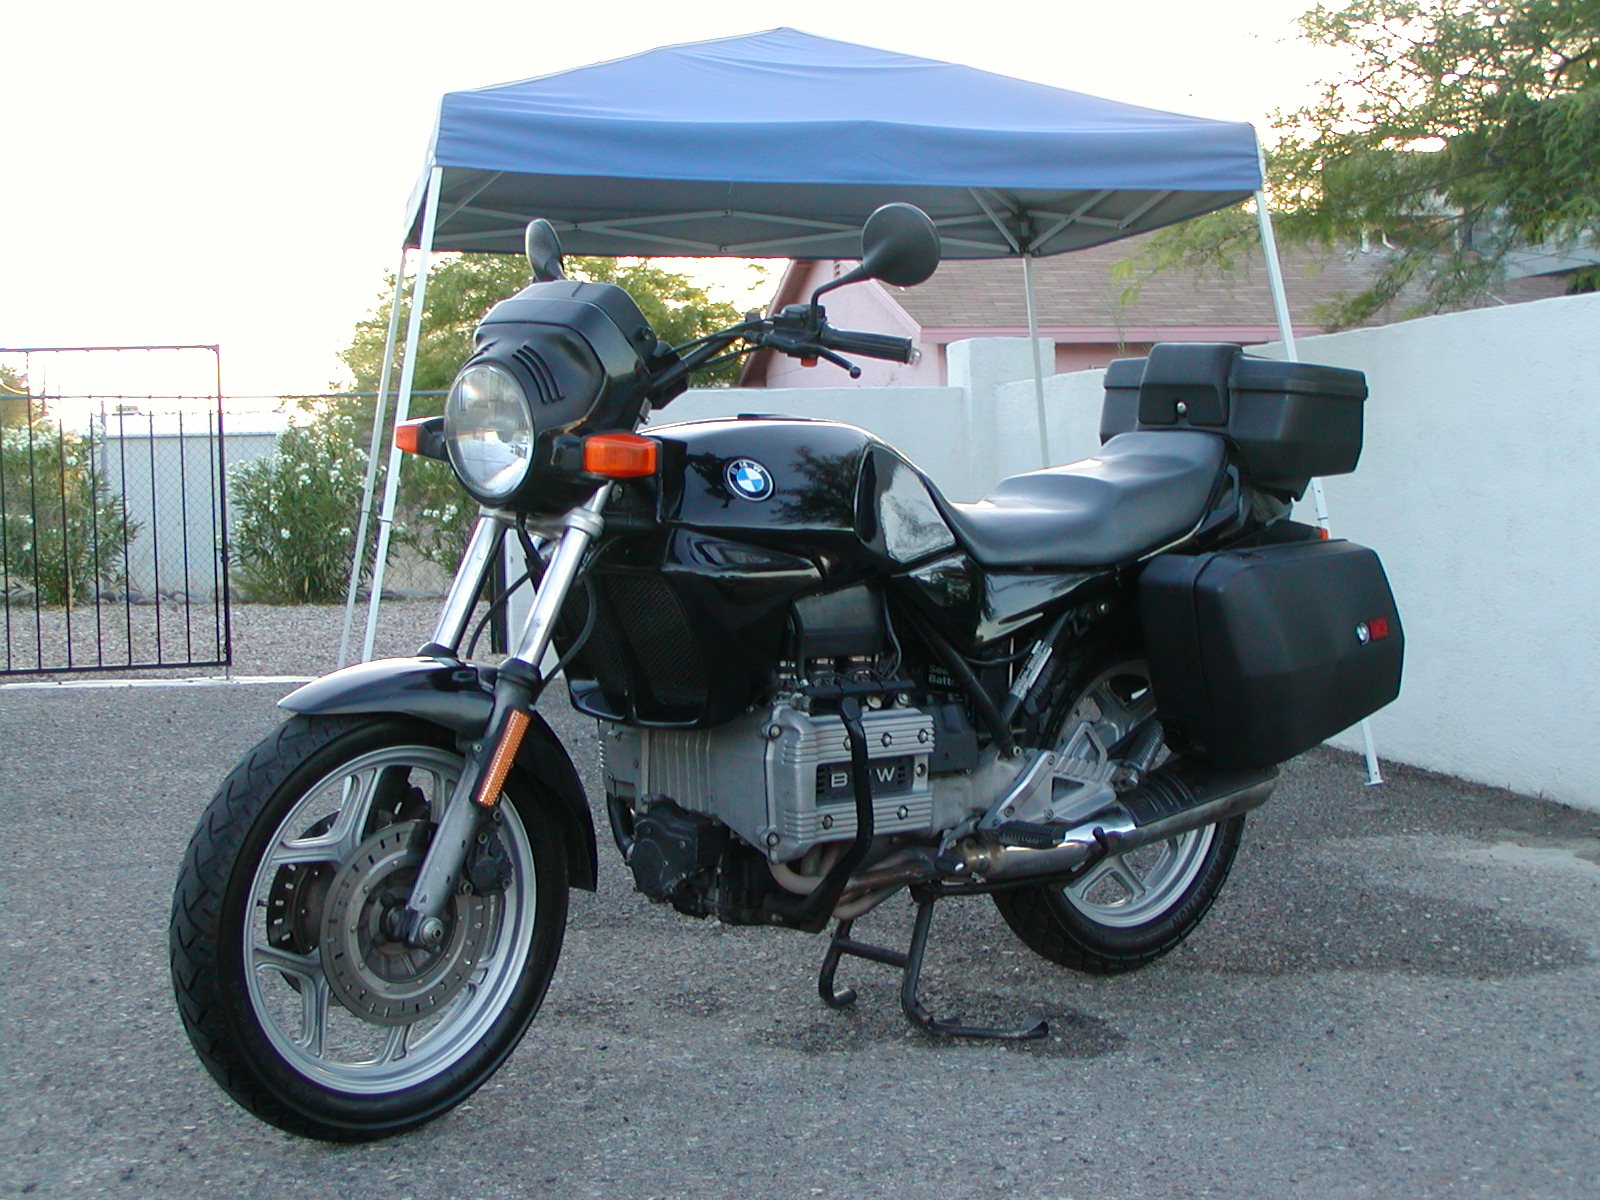 BMW K100RT 1984 images #143861